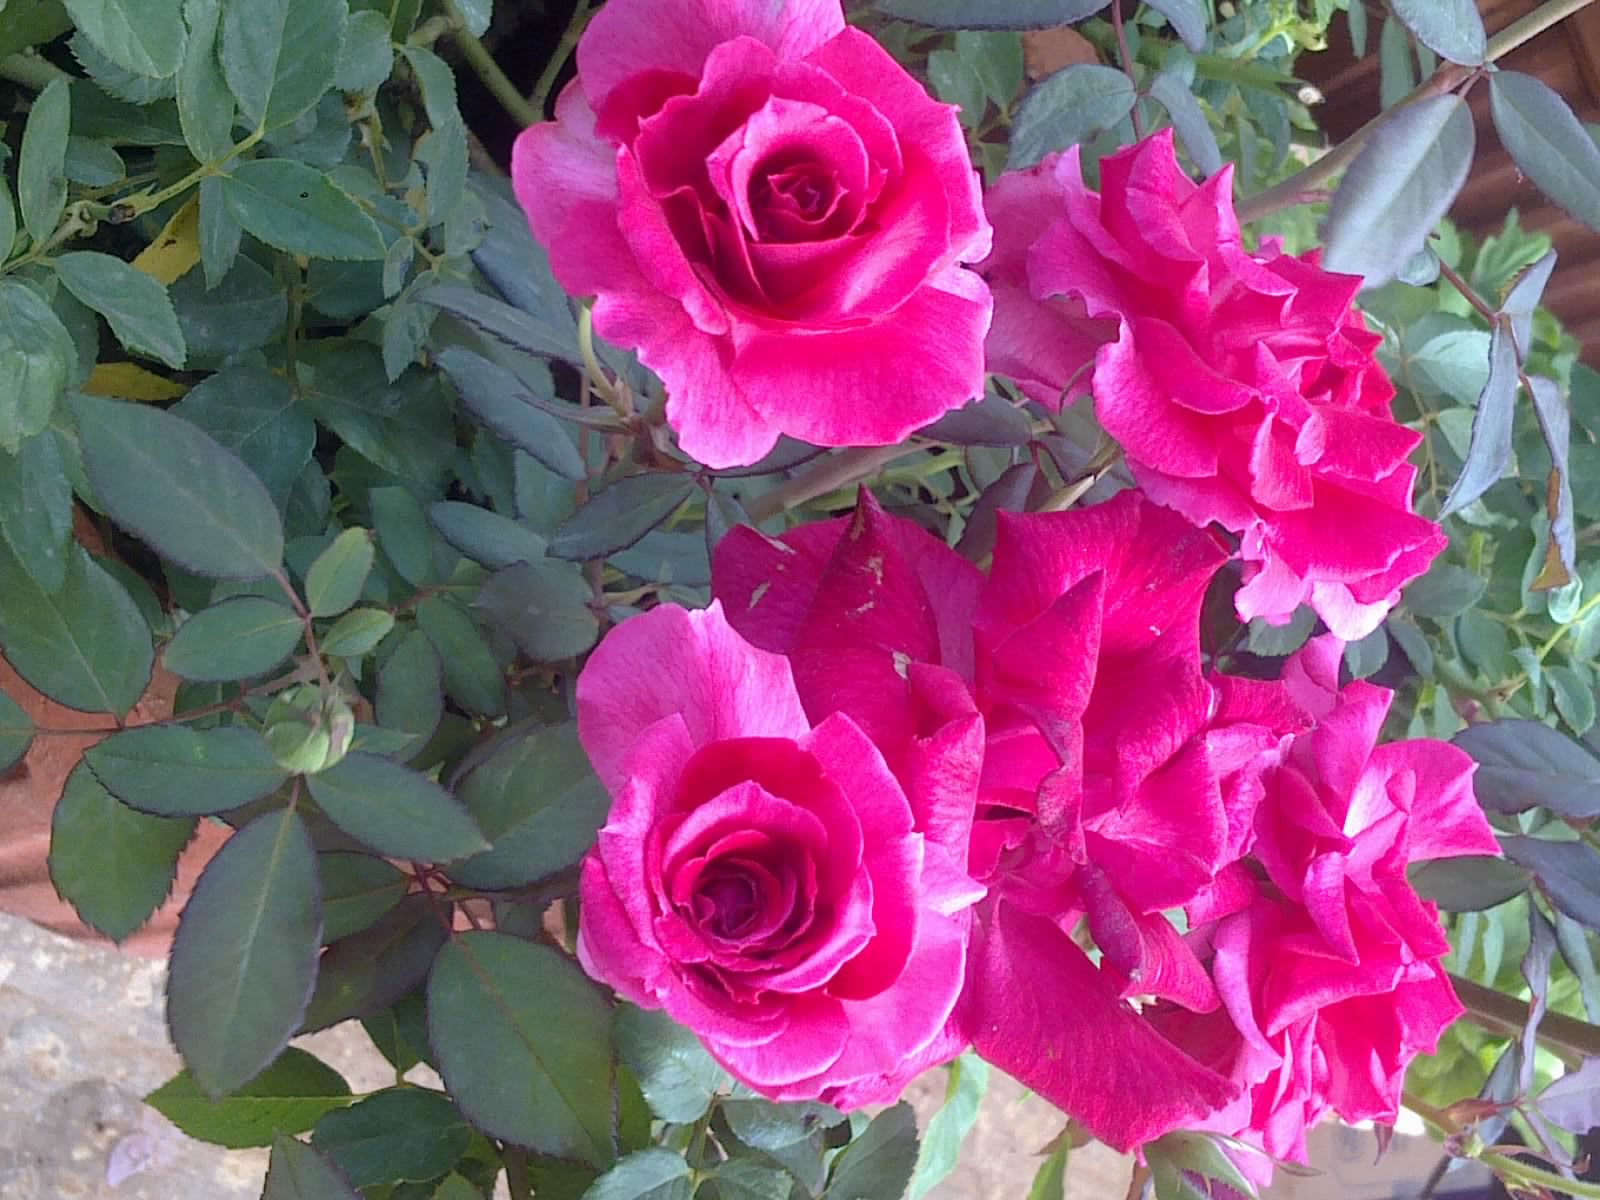 Roses In Garden: Plants Growing In My Potted Garden.: Growing And Caring